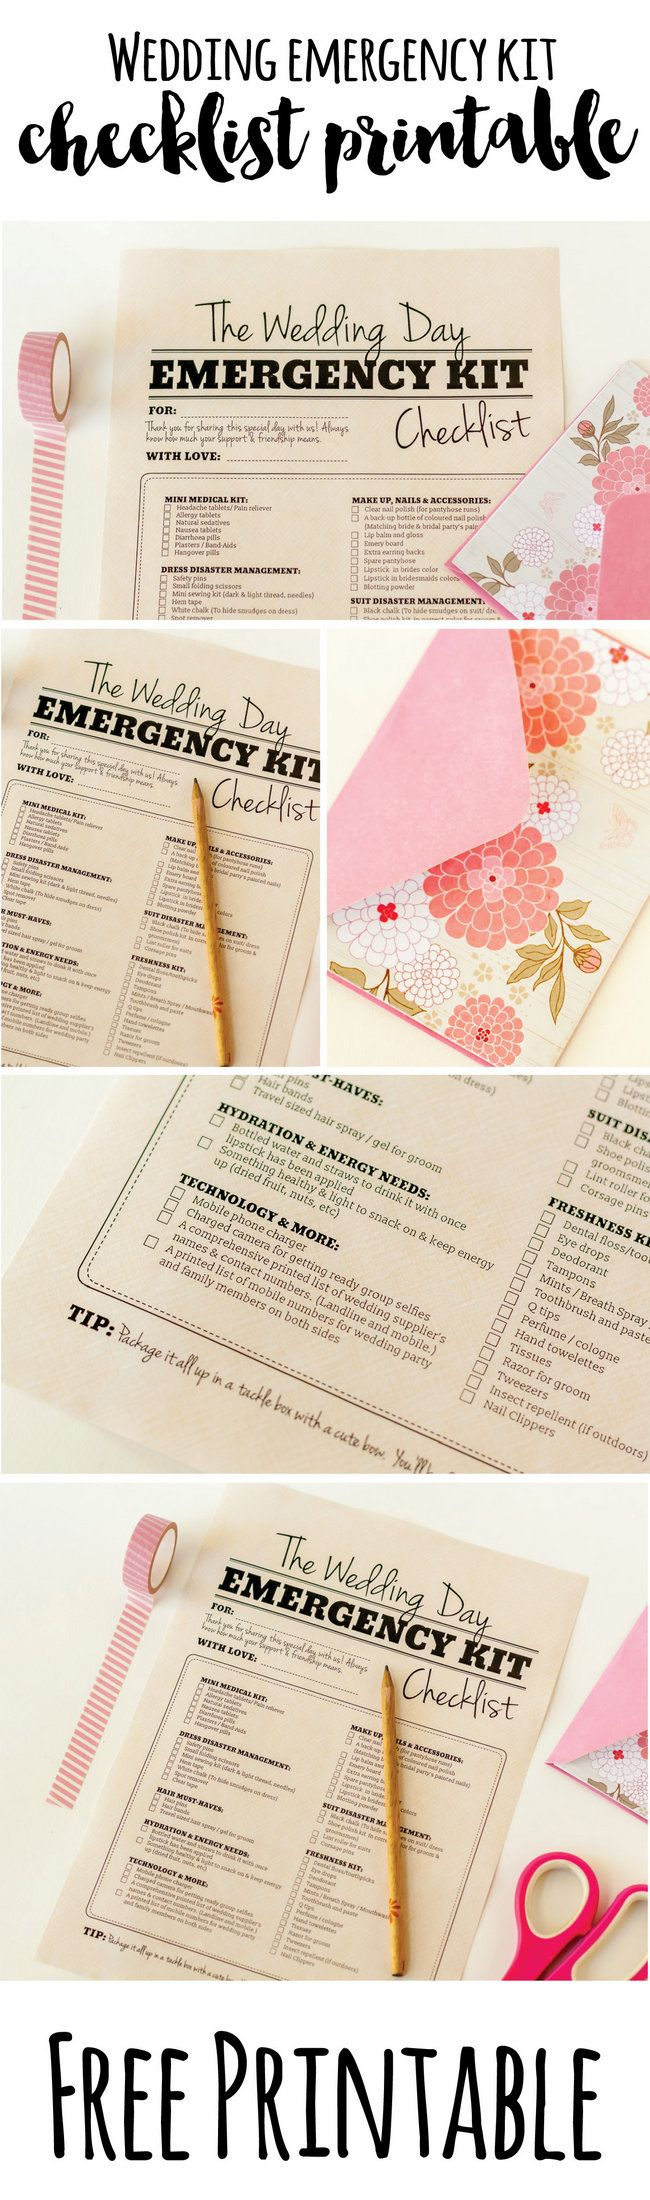 Download and print this handy Wedding Day Survival Kit with must have items for bridesmaids and groomsmen. Best part? It's free! http://www.confettidaydreams.com/wedding-day-emergency-kit-checklist/